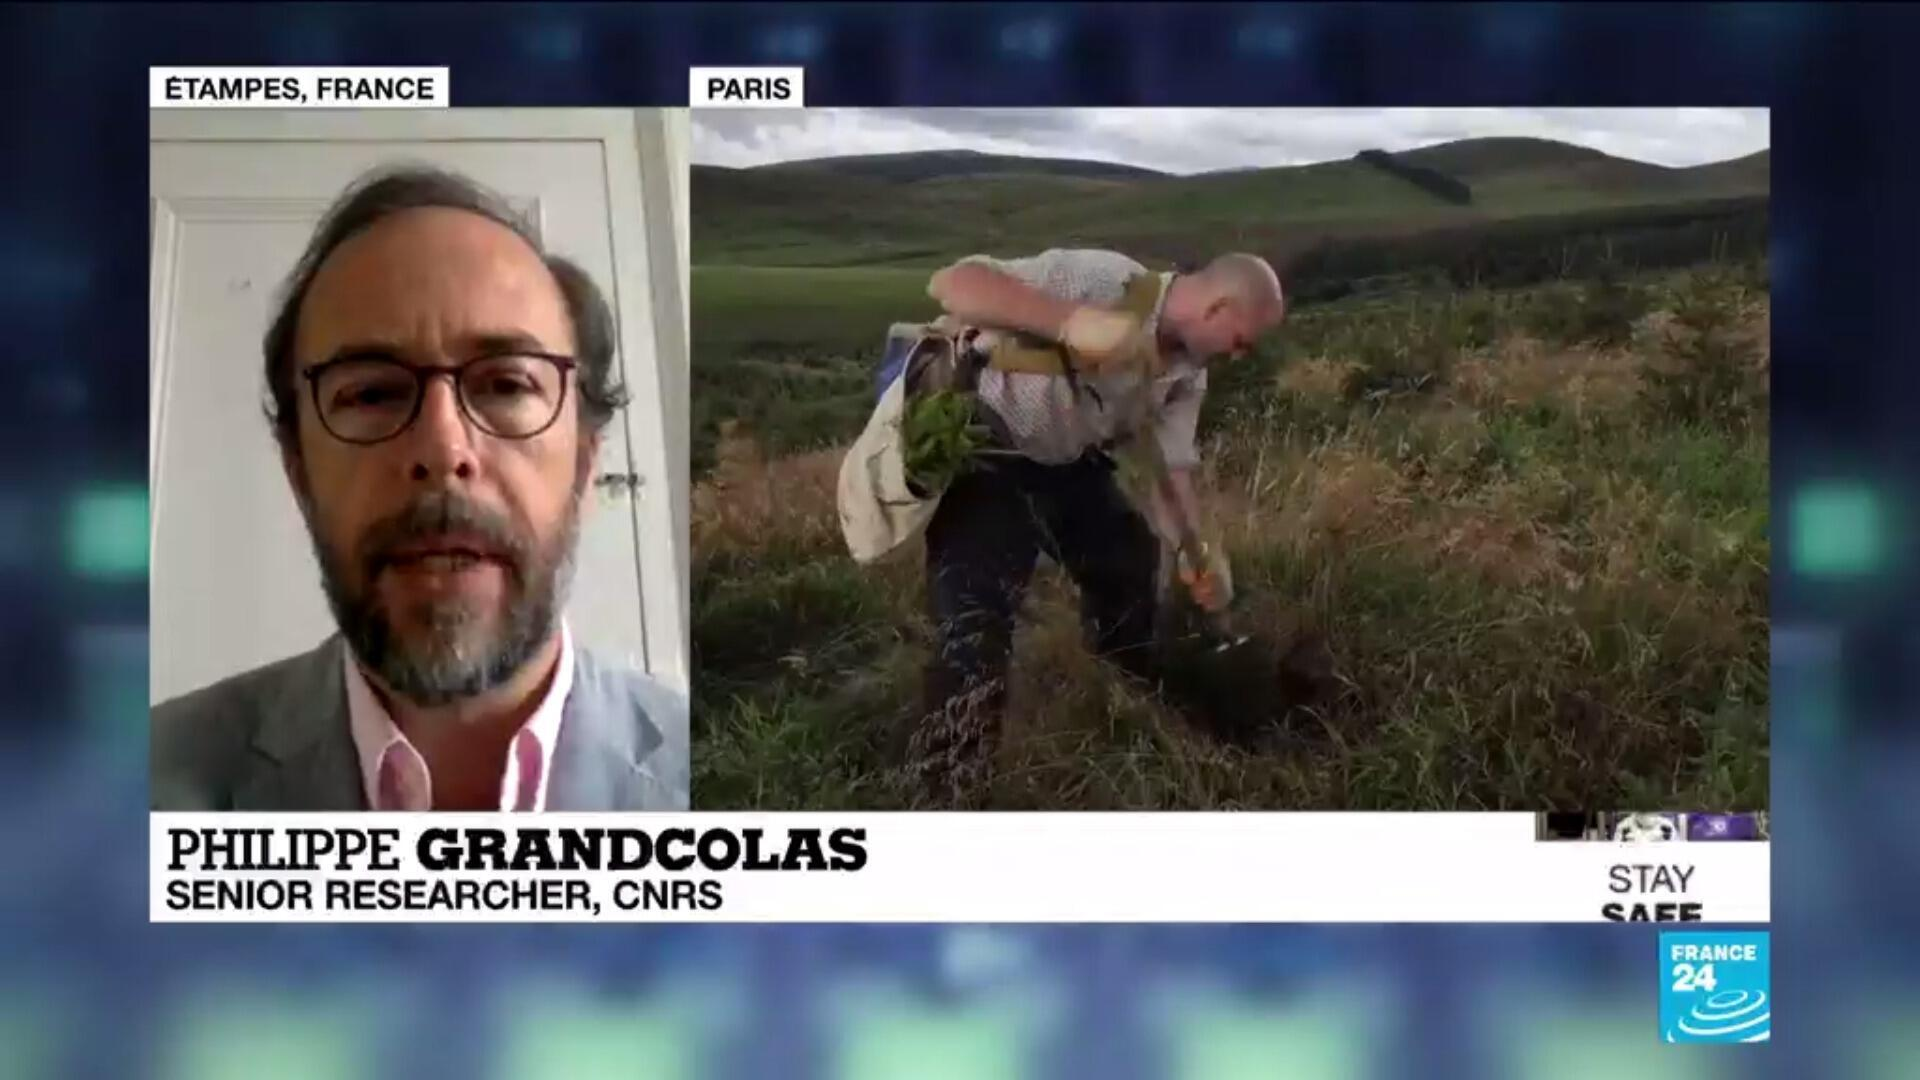 Philippe Grandcolas, a senior researcher at France's National Centre for Scientific Research, spoke to FRANCE 24 on the International Day of Biodiversity about how humans can improve preservation of the environment.